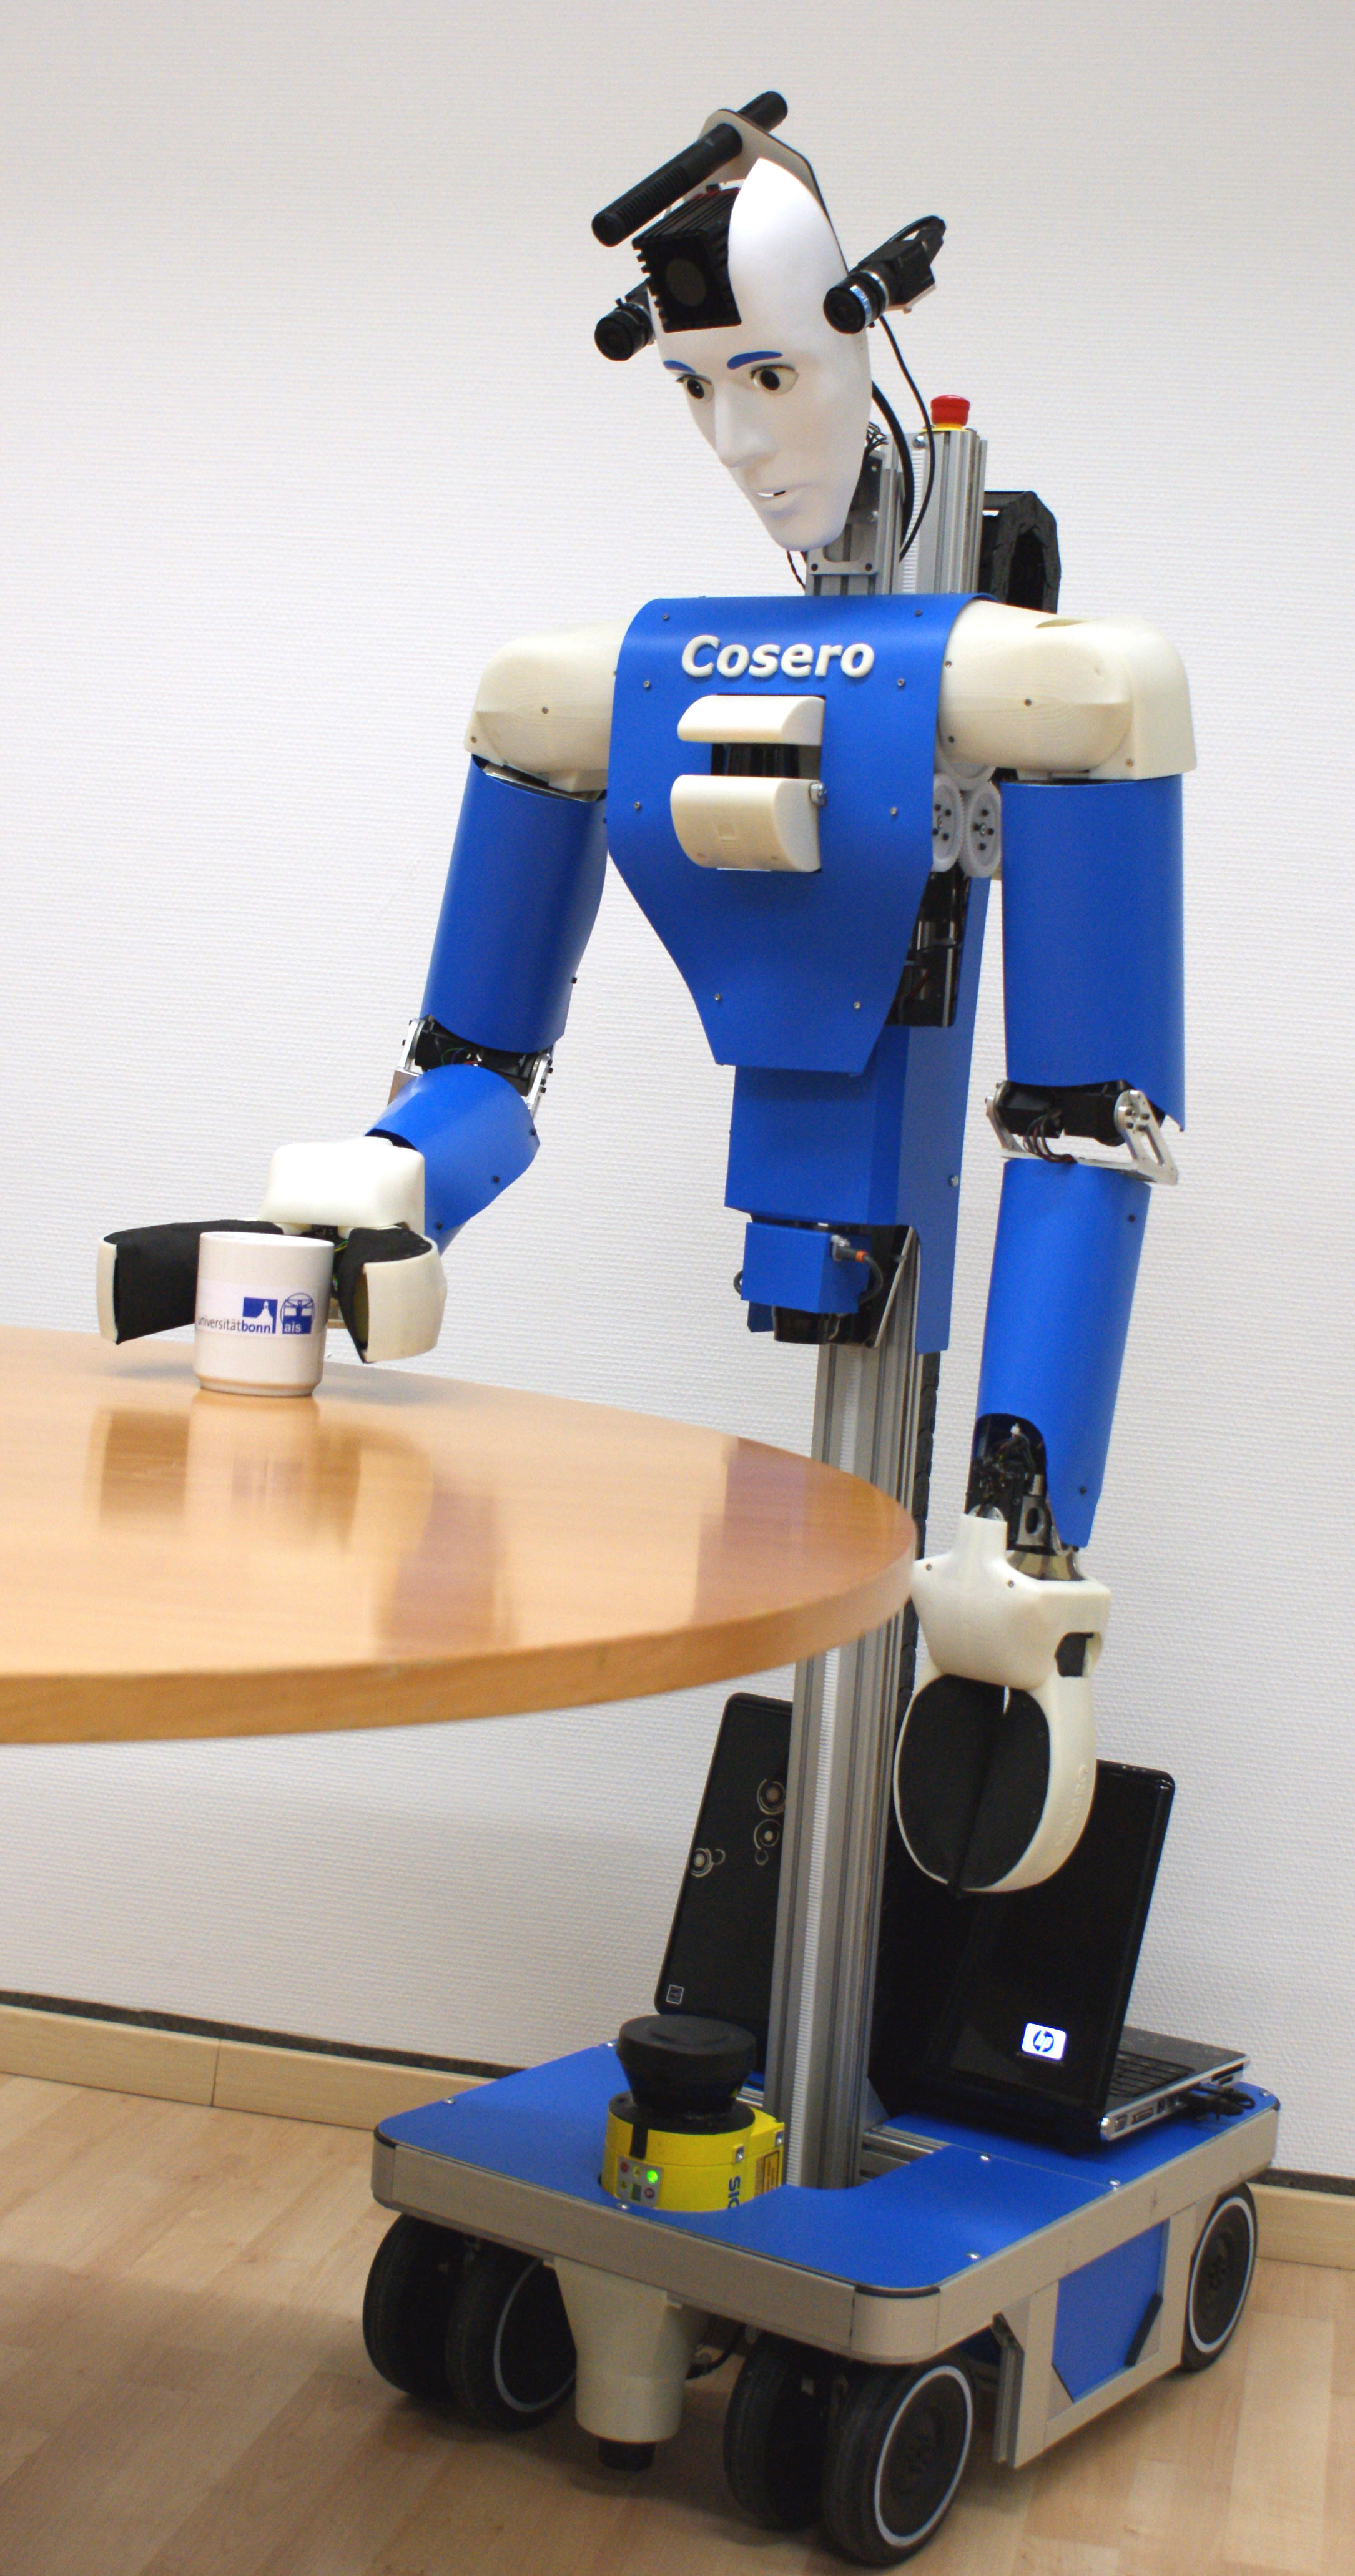 Cosero - Picture: /uploads/images/robots/robotpictures-all/cosero-001.jpg